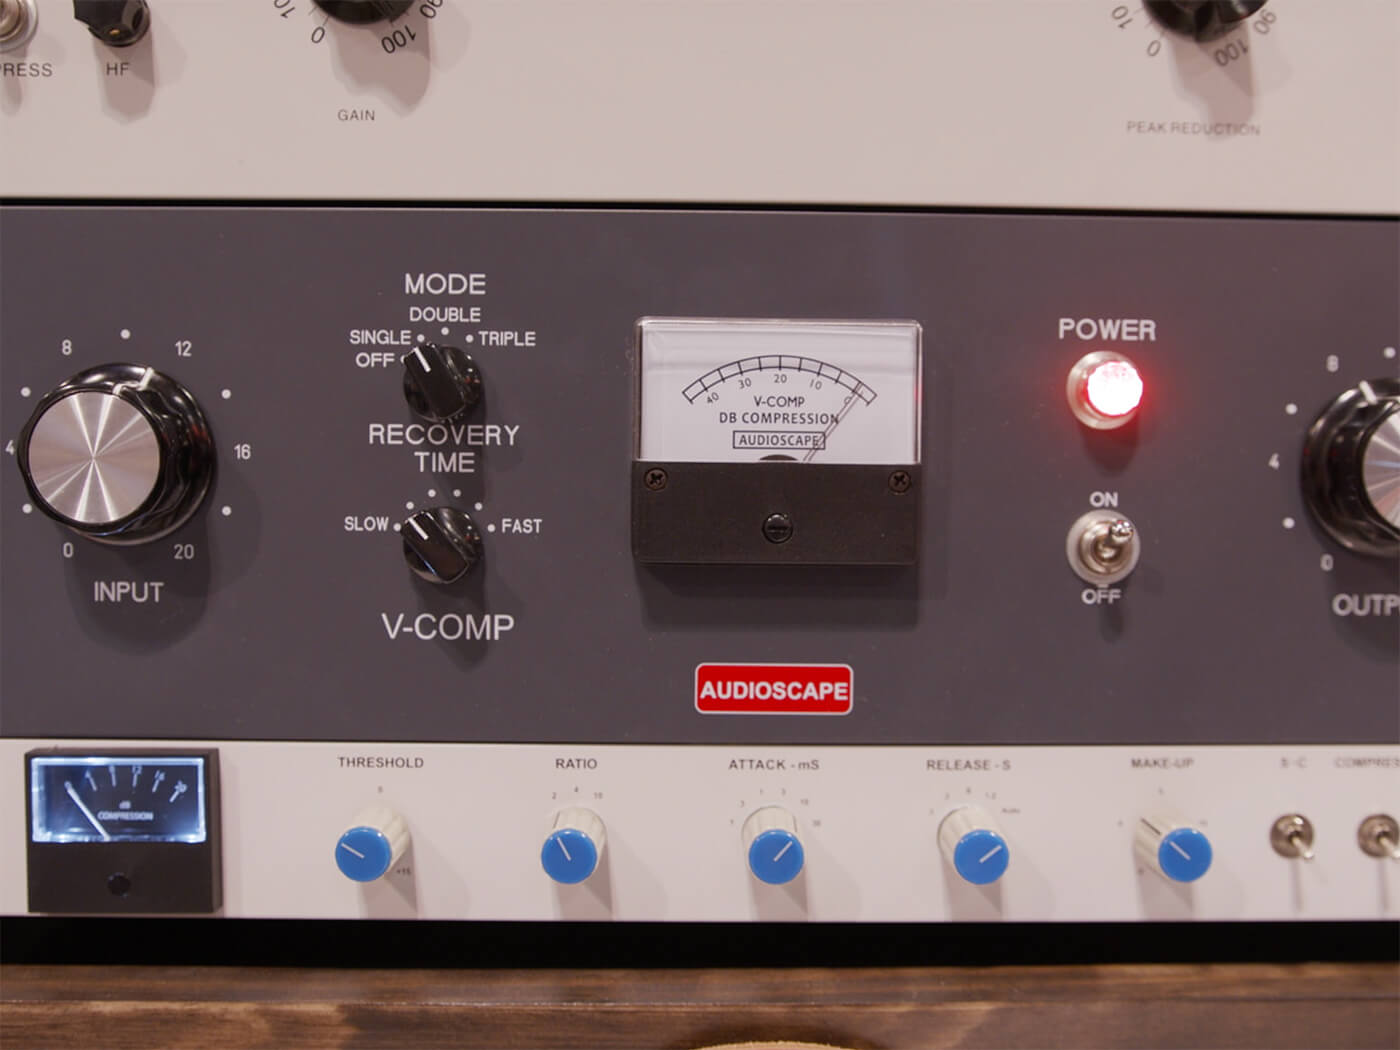 Summer NAMM 2019 Video: Audioscape Engineering makes affordable Gates-style vocal compressor, the V-Comp